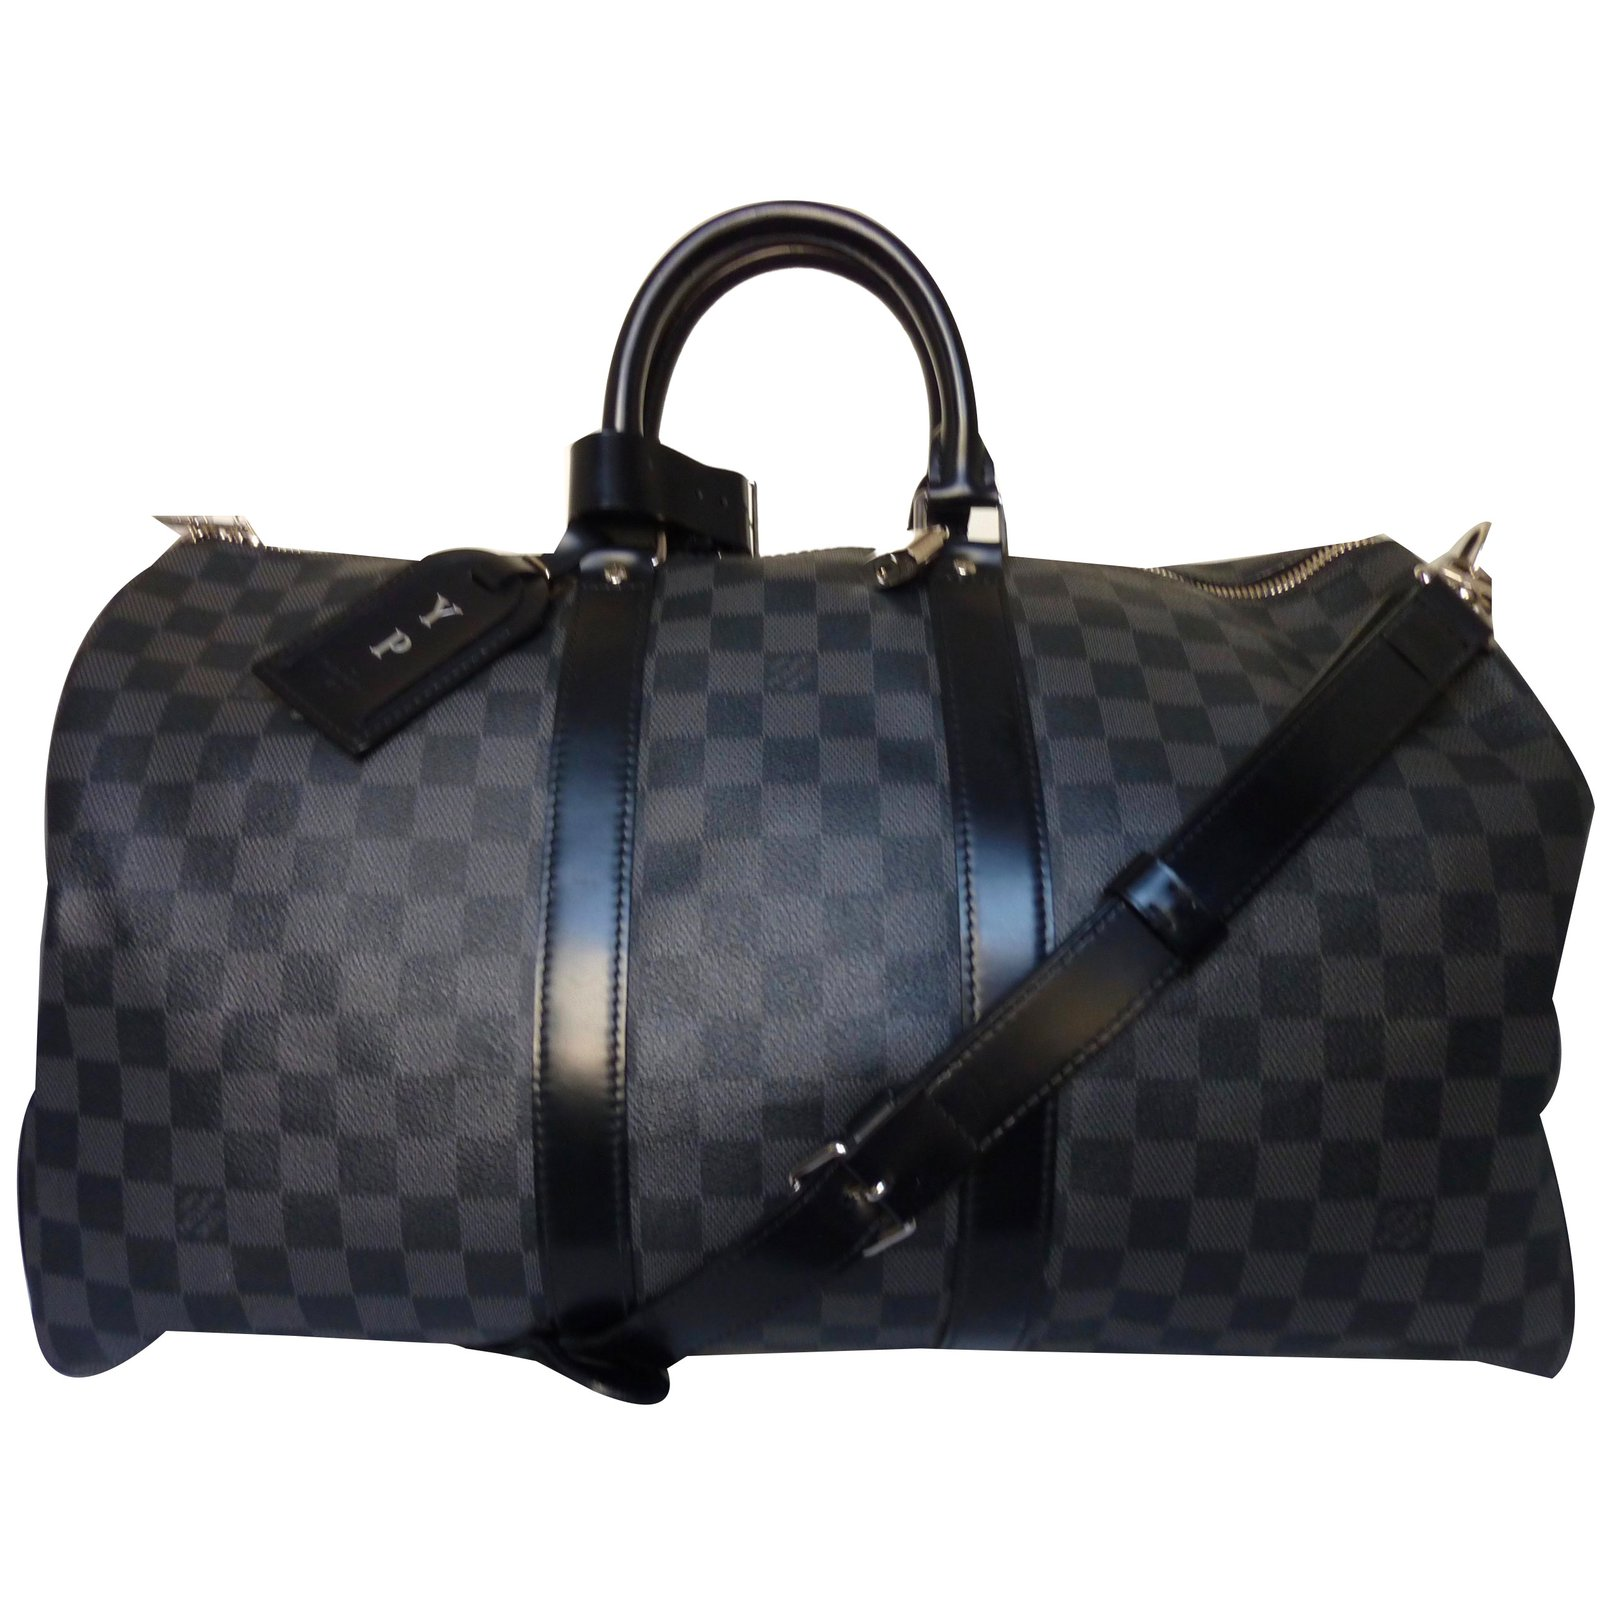 a1cd78a733f Louis Vuitton keepall 45 Travel bag Leather